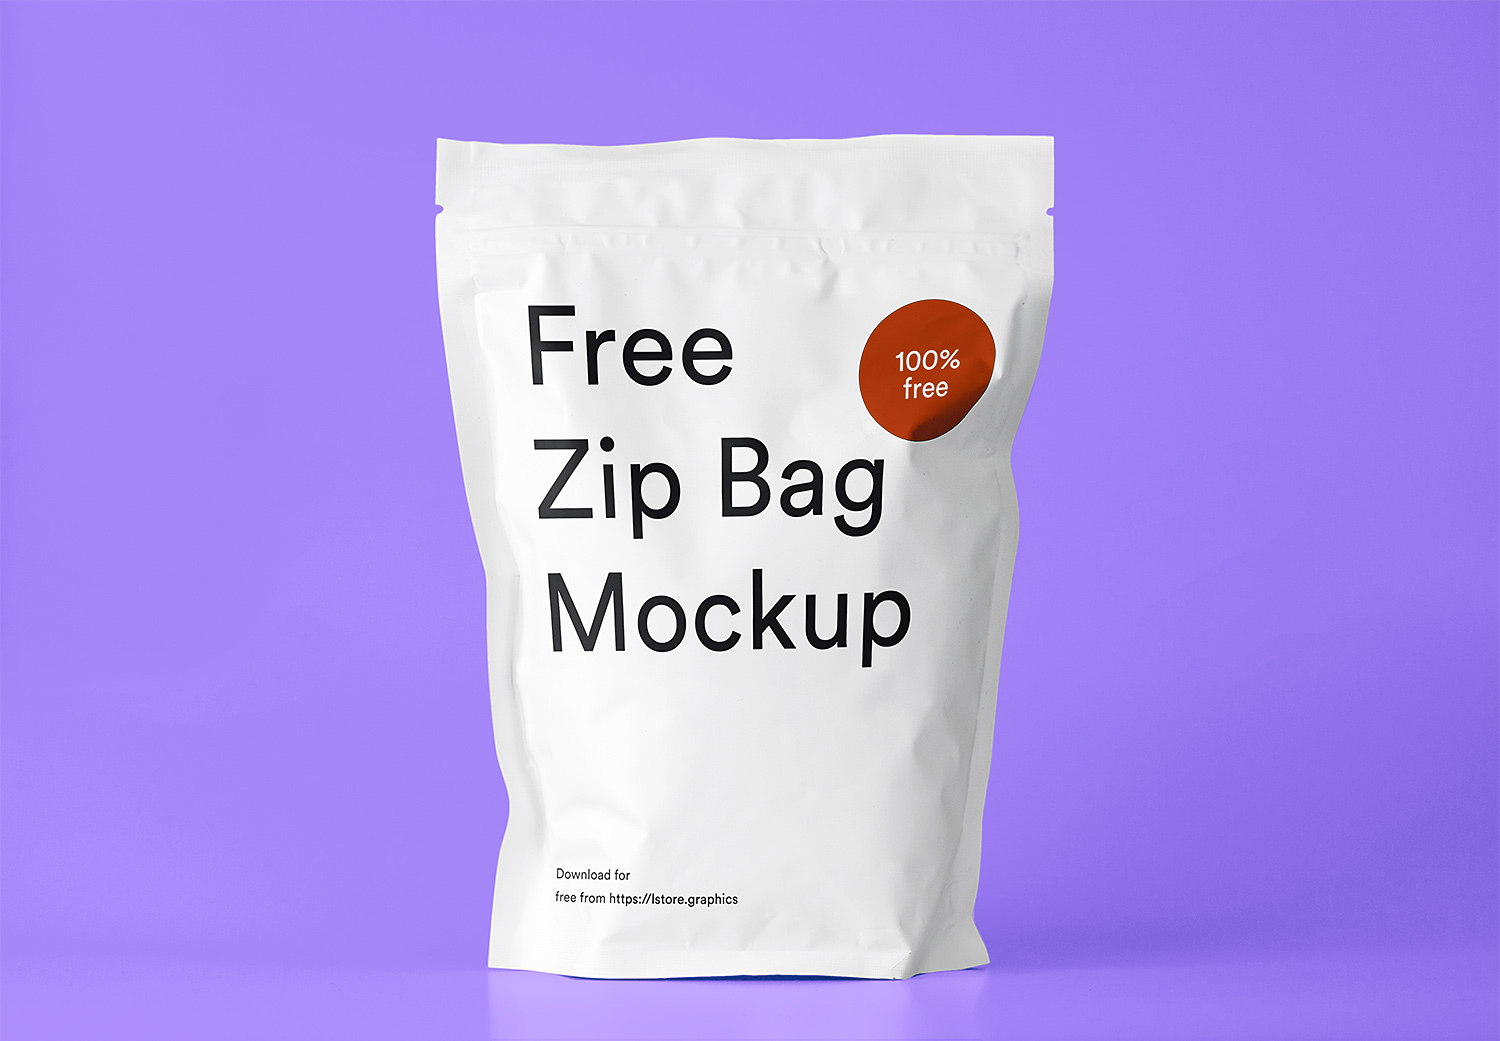 download fabric eco bag that consists of 6 free psd mockups for promoting excusive products, eco bags and other interesting ideas for your business and work. Free Zip Bag Mockup Free Mockup